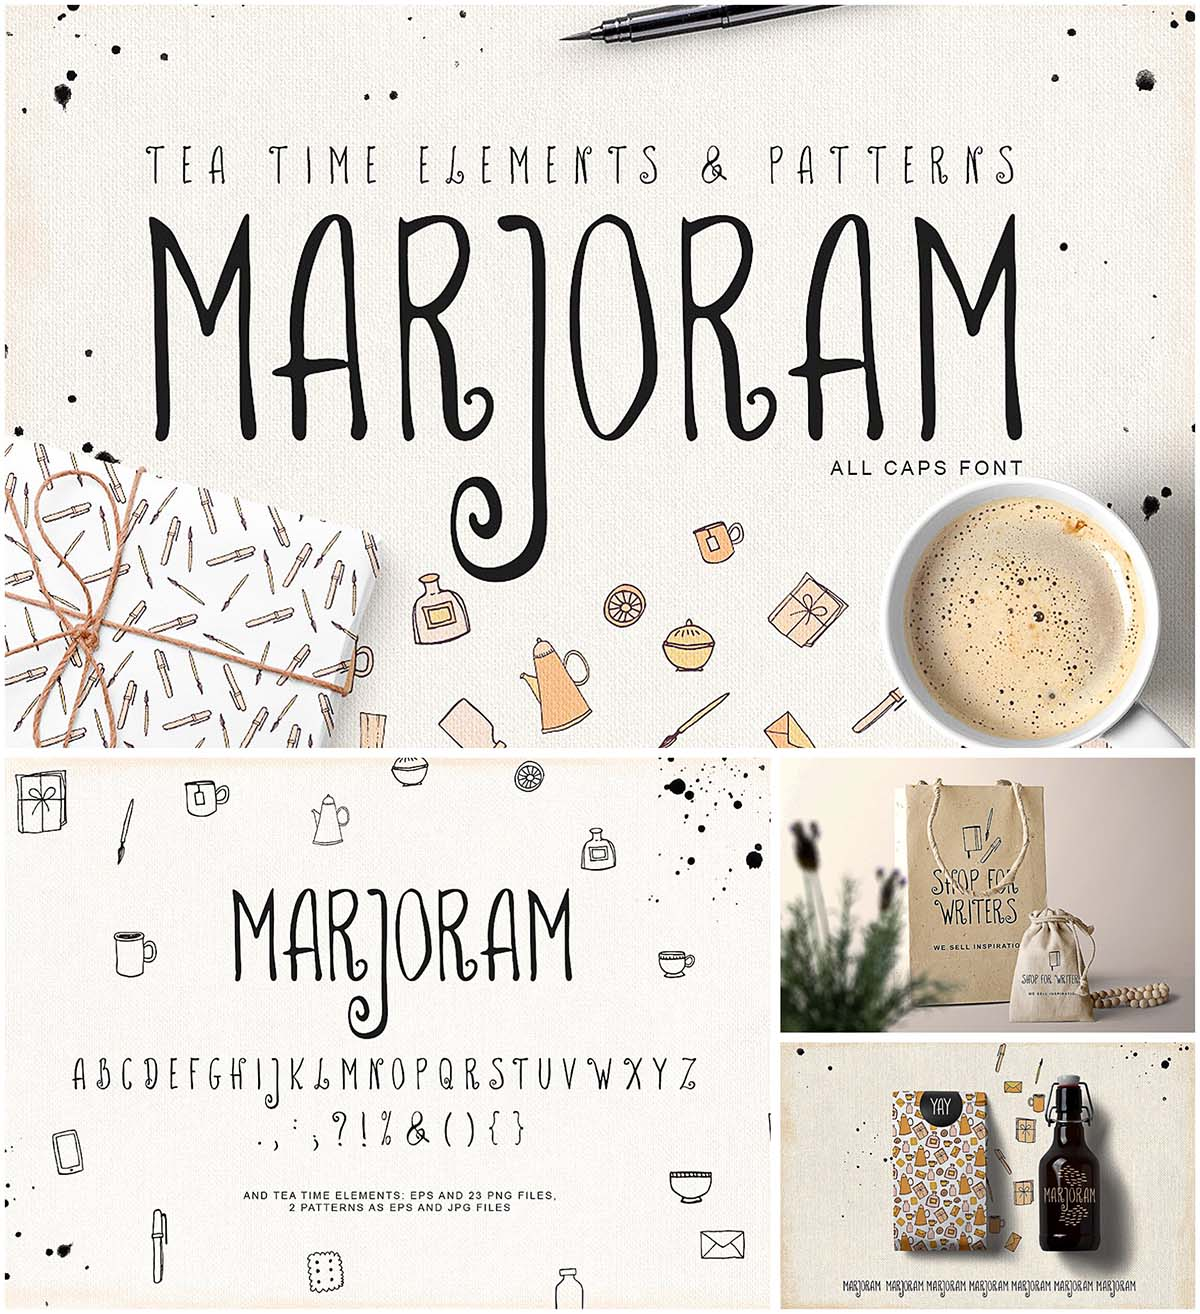 Marjoran font with illustrations